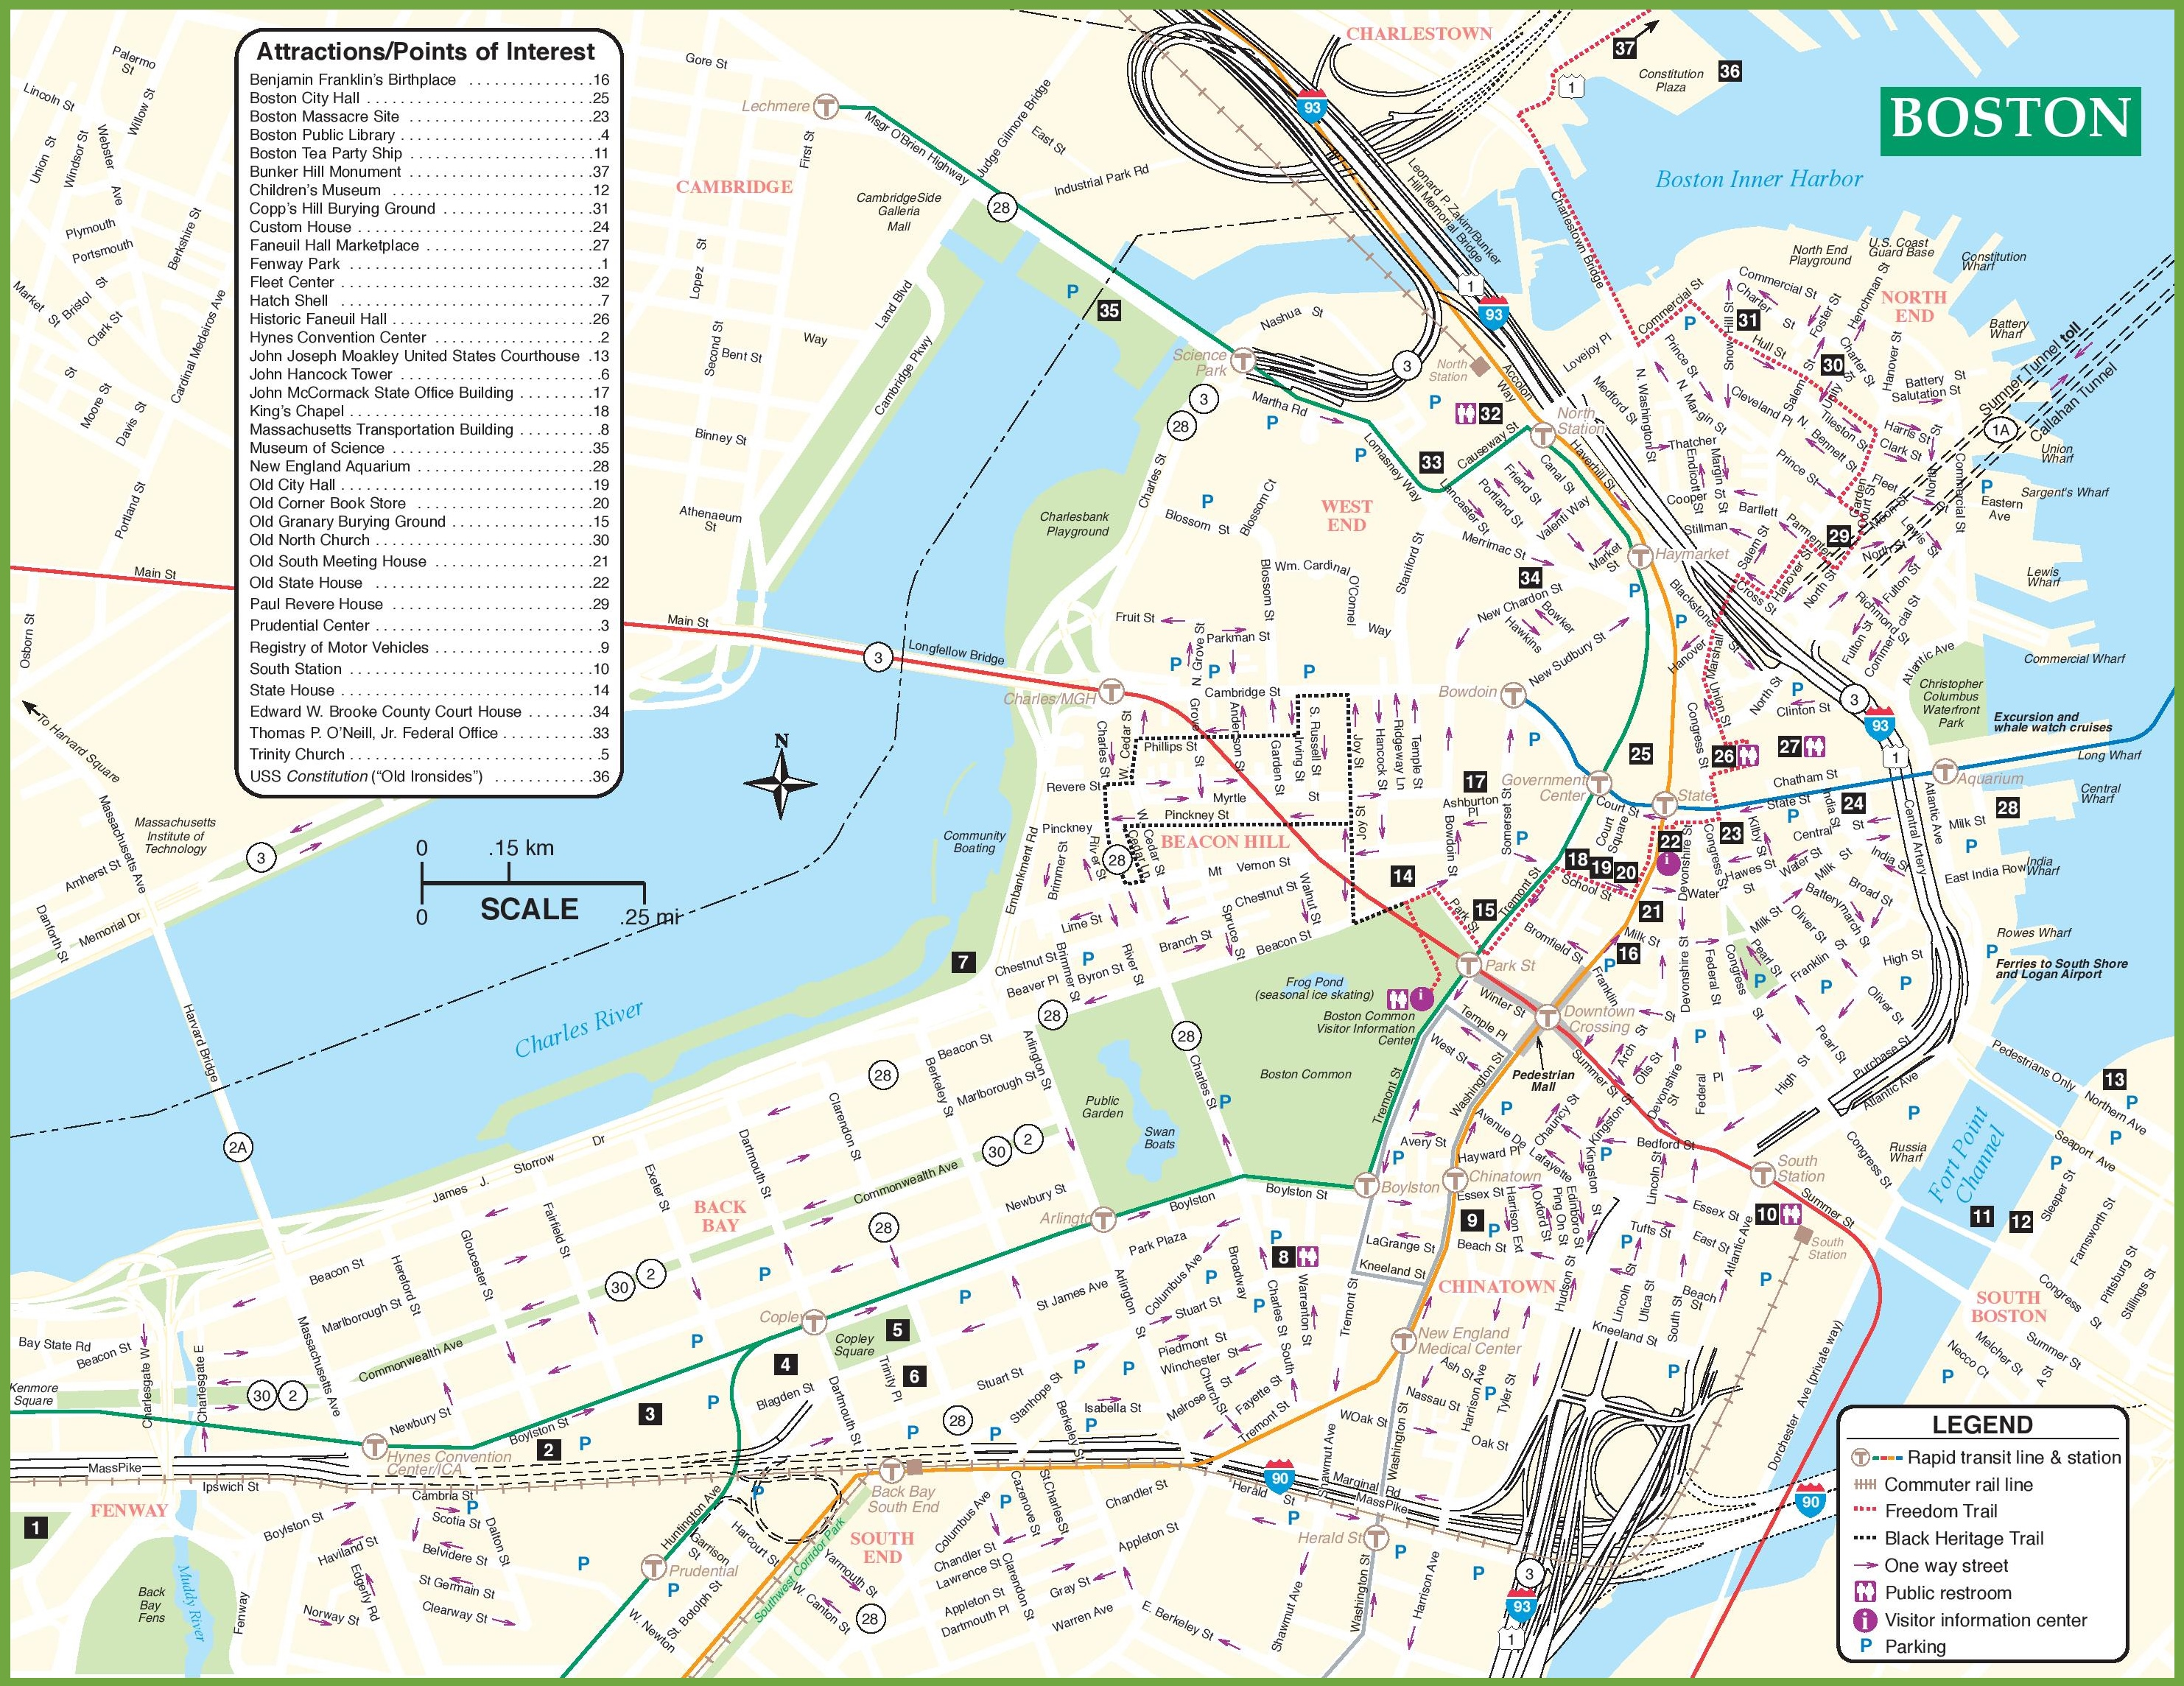 Map Of Boston Attractions Boston tourist attractions map